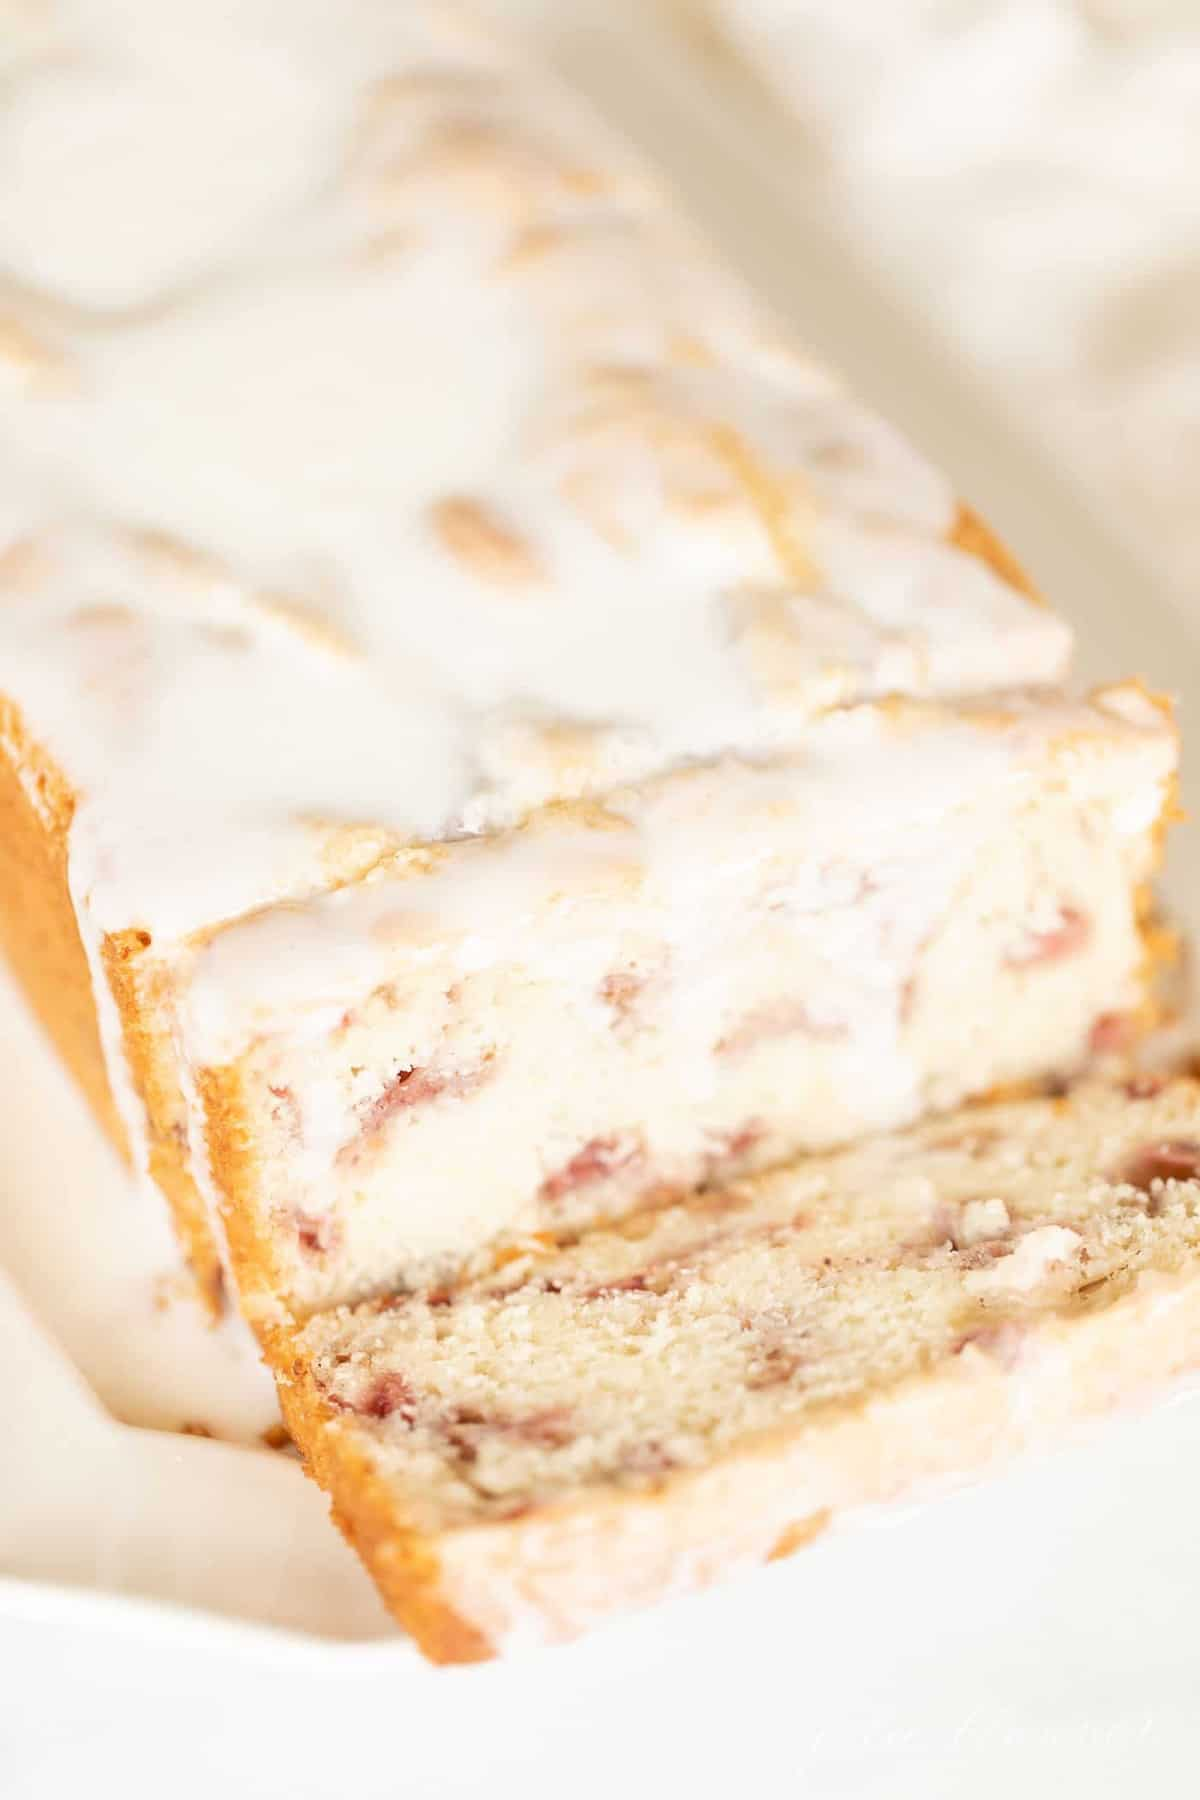 A sliced loaf of glazed strawberry quick bread on an ivory platter.